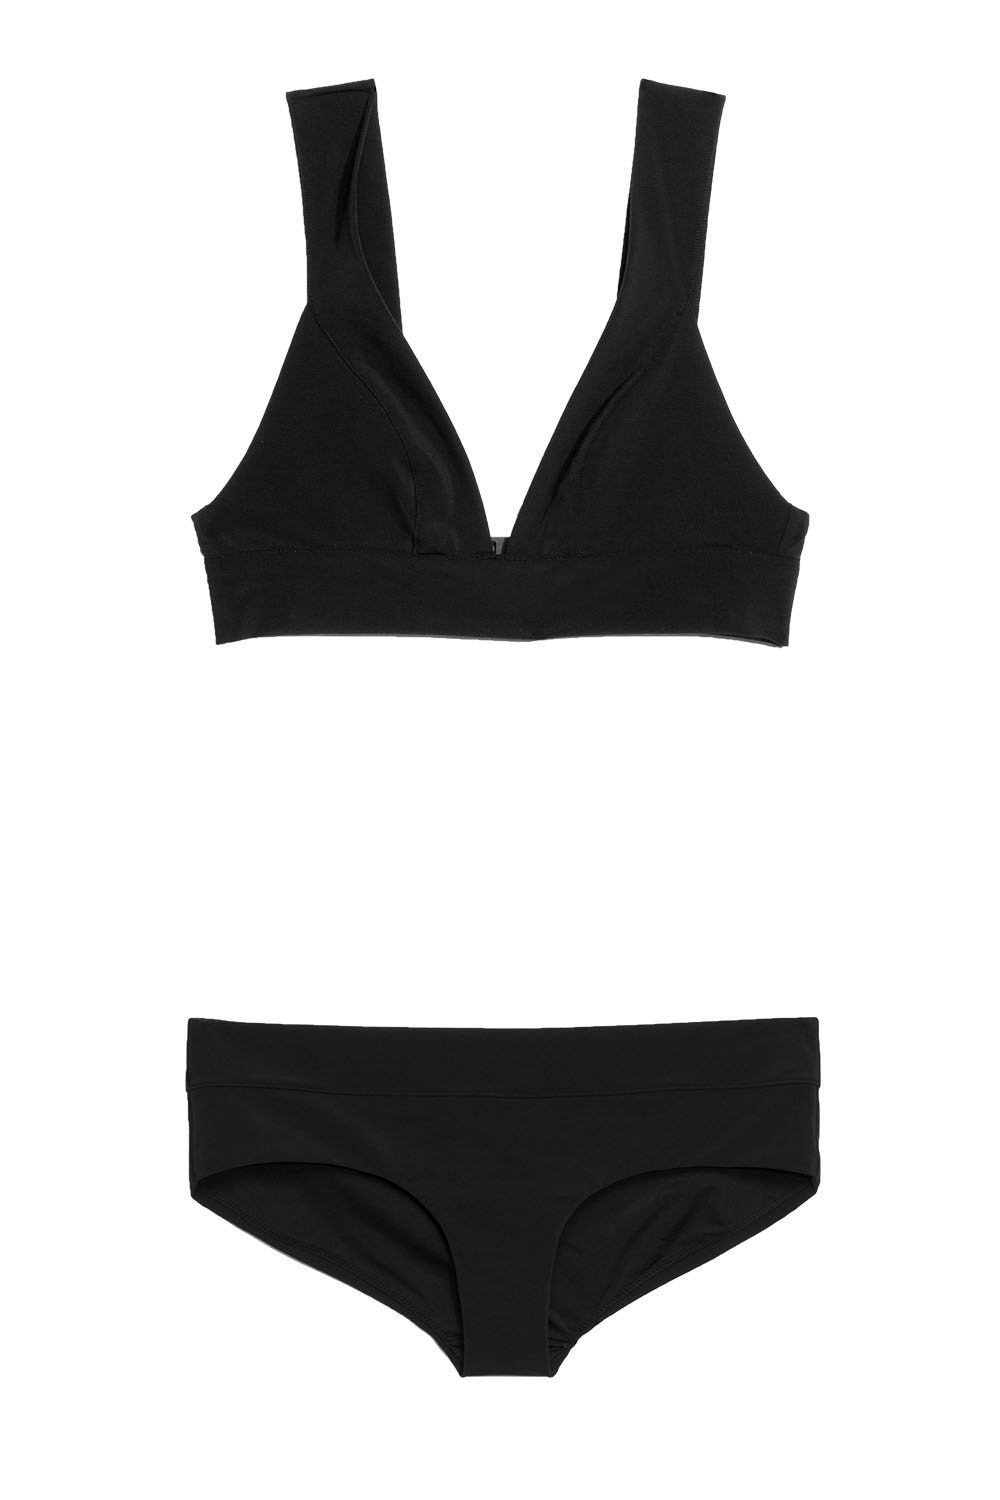 Best for Those Who Love Classics V-Cut Bikini & Other Stories stories.com $29.00 SHOP THE TOP SHOP THE BOTTOM If you're in the market for a new black bikini, opt for thicker-banded style. The top's straps are supportive, which minimizes the chance of a wardrobe malfunction as you splash around the pool with friends.